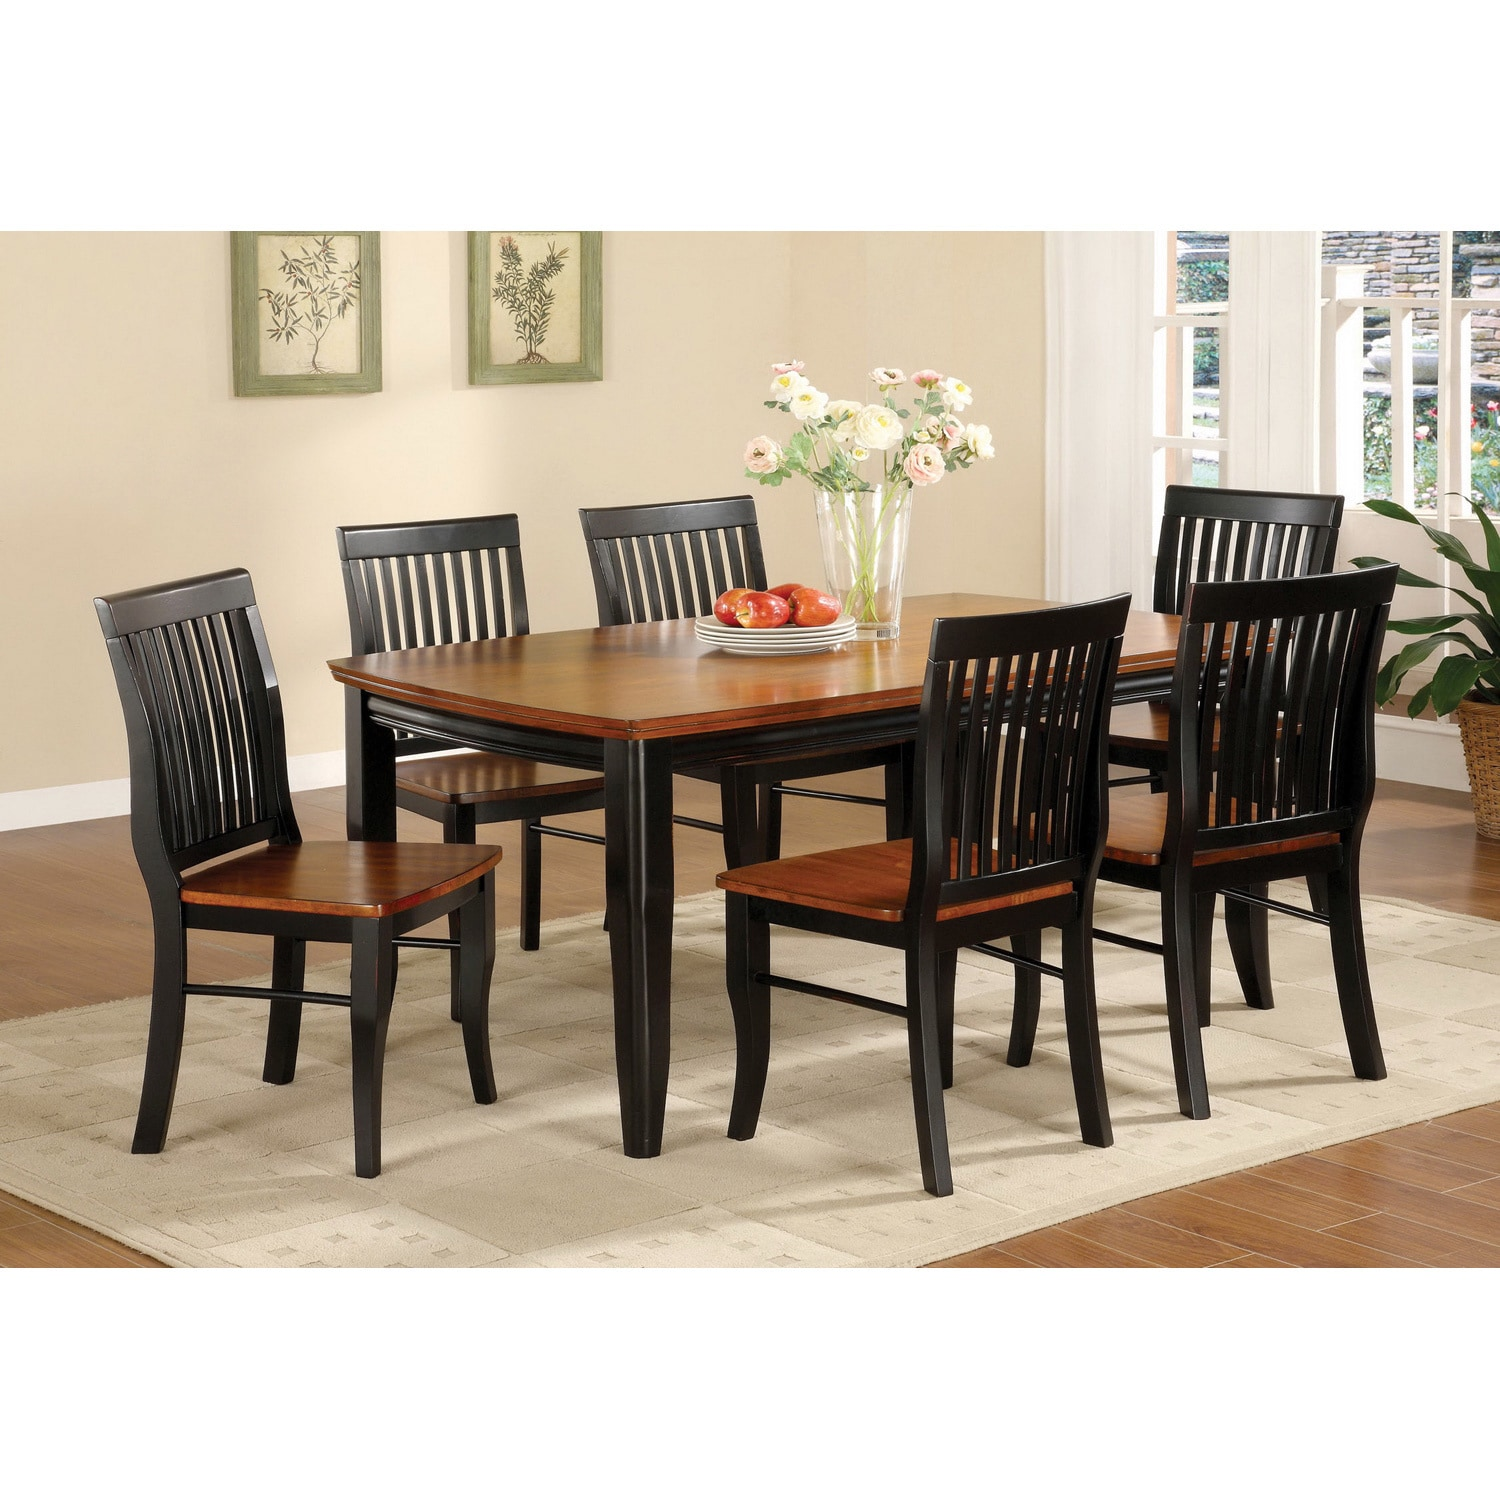 Furniture Of America Burwood Antique Oak And Black Mission Style 7 Piece  Dining Set   Free Shipping Today   Overstock   16155434